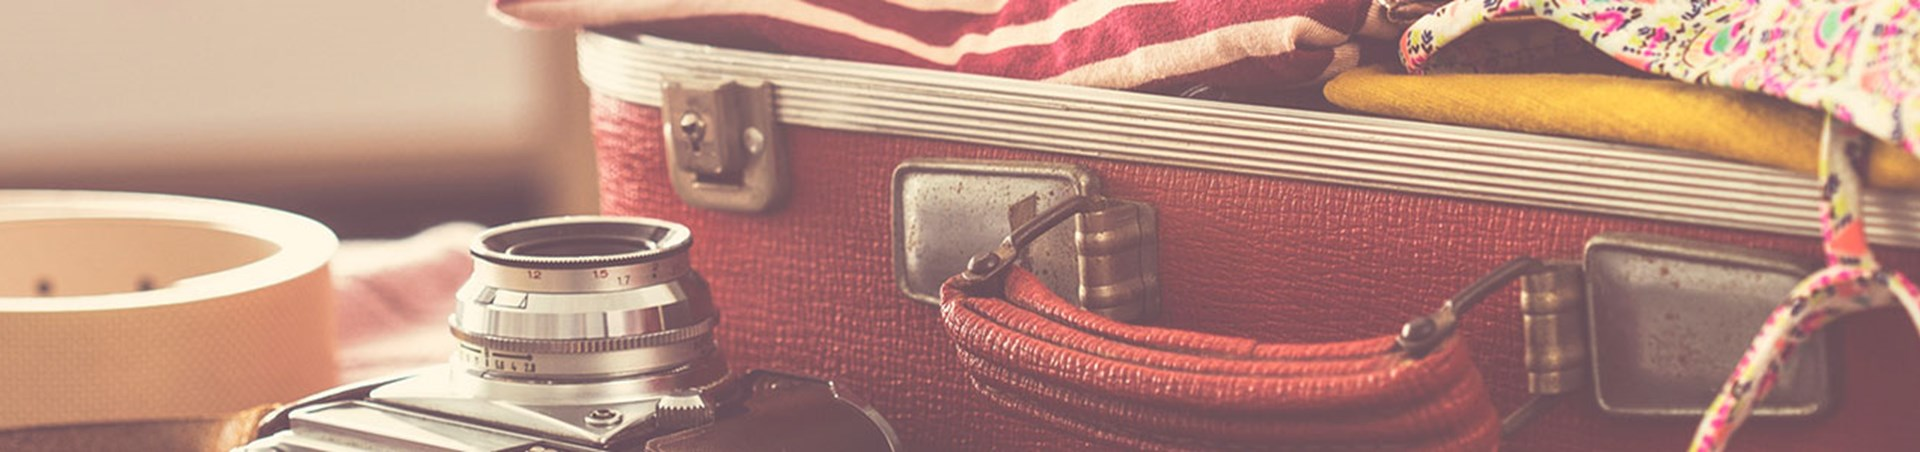 Our Luggage Policy | National Express